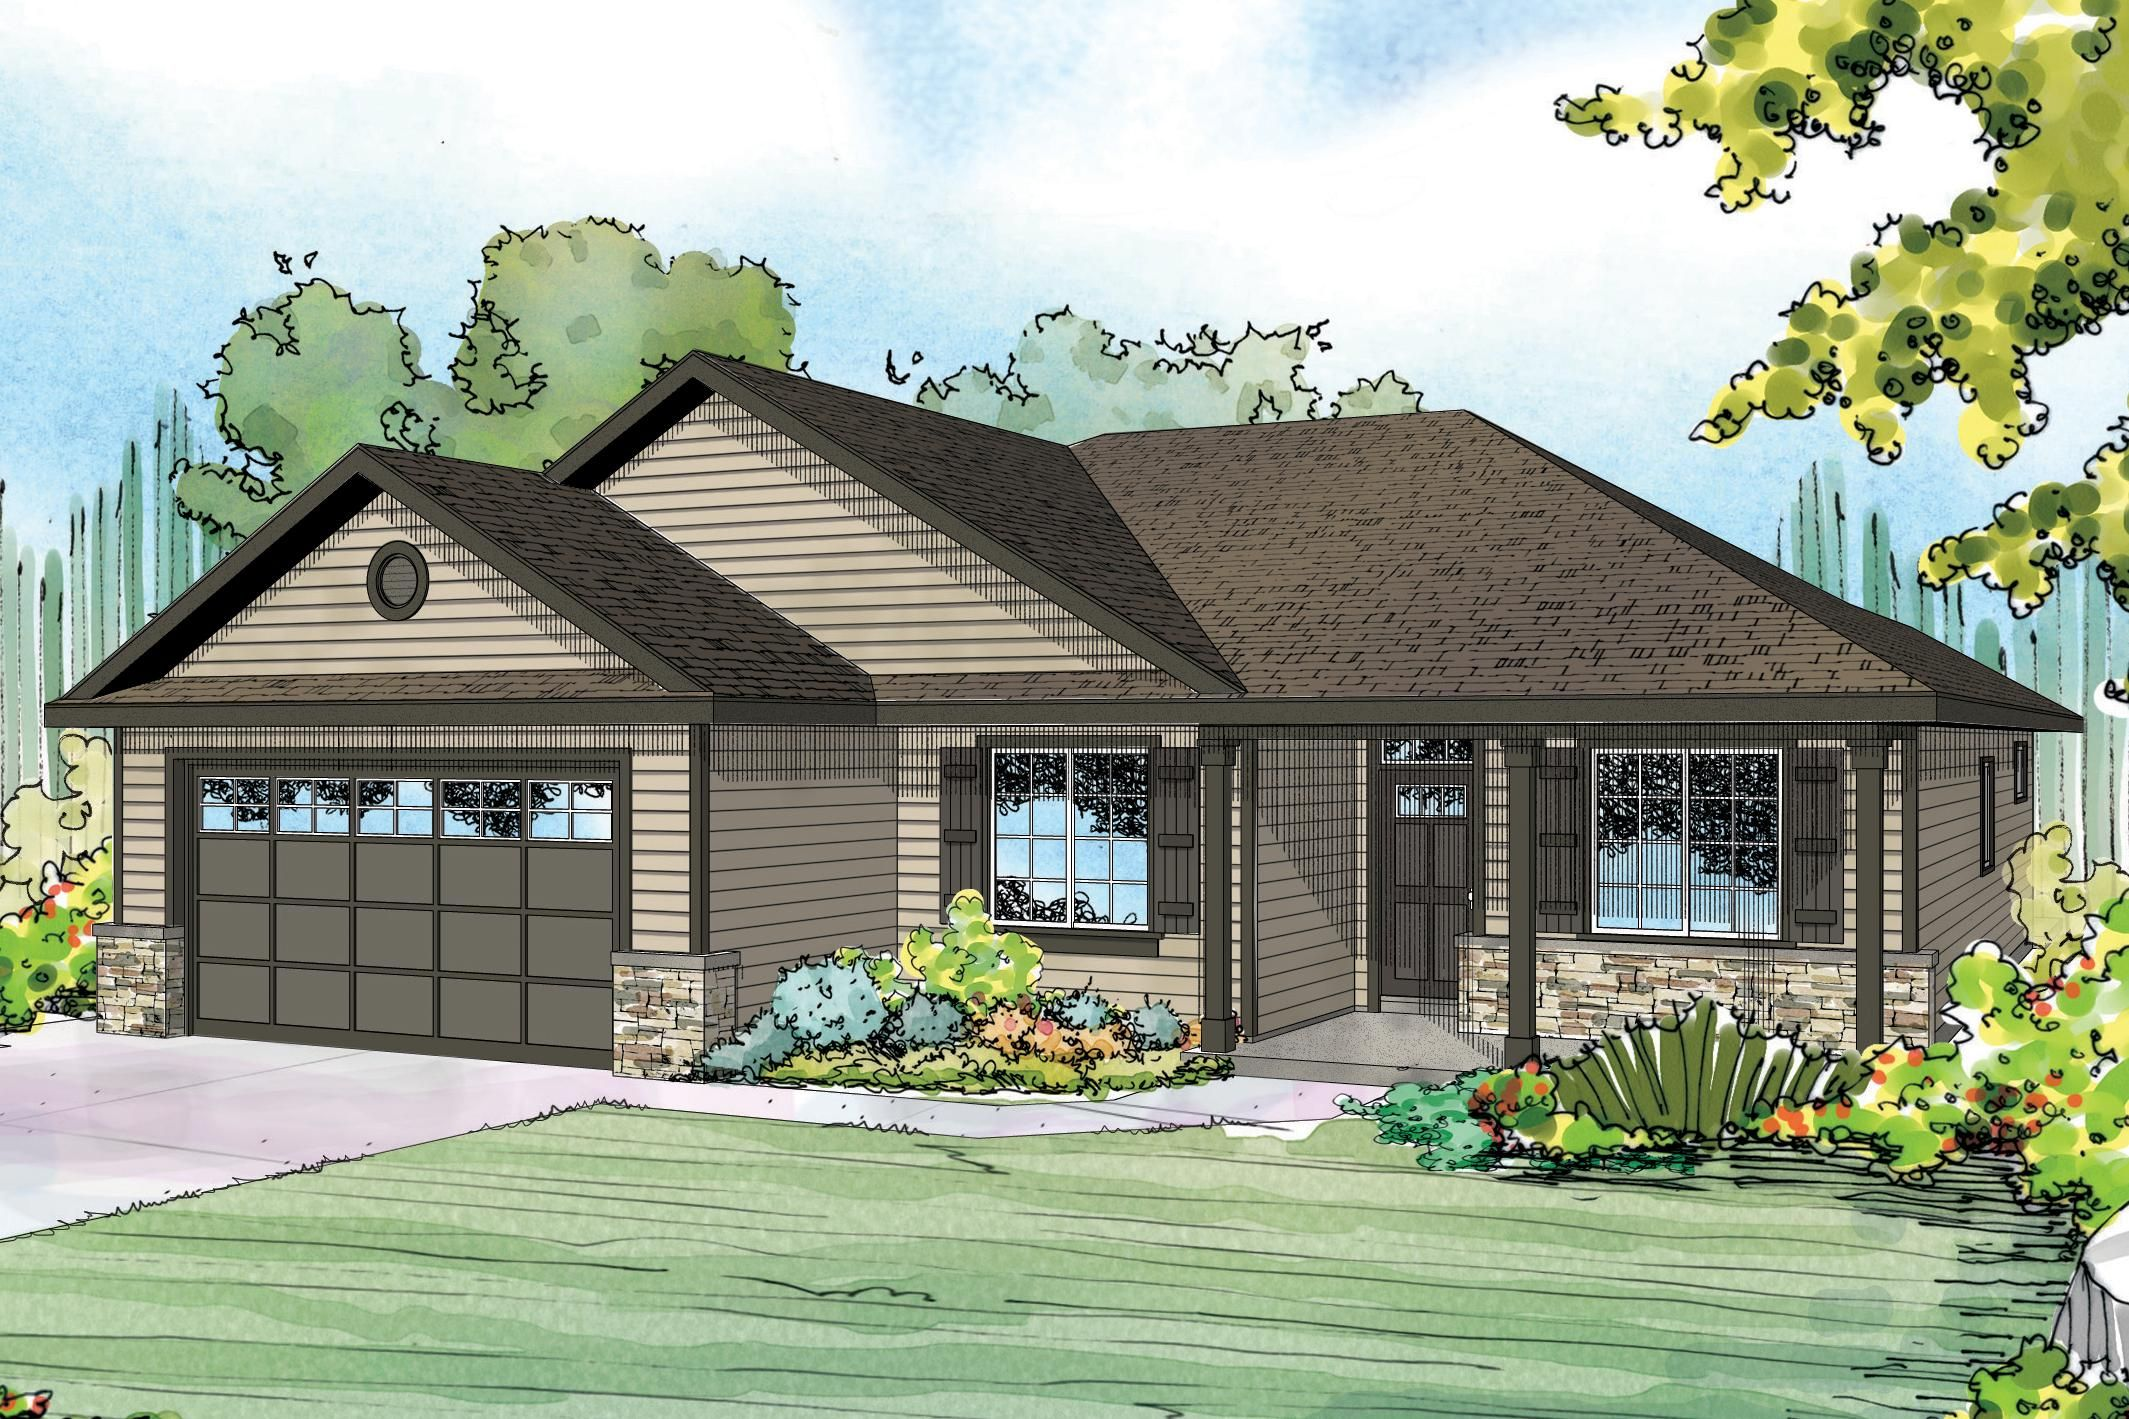 Ranch House Plan - Eastford 30-925 - Front Elevation | House ... on skyscraper front elevation, ranch house courtyard, ranch house bedroom, ranch house office, ranch house view, ranch house bathroom, ranch house dining room, ranch house roof, ranch house two story, ranch house living room, ranch house backyard, ranch house stairway, ranch house entry, ranch house basement, barn front elevation, building front elevation, church front elevation, ranch house deck, ranch house windows, ranch house hallway,